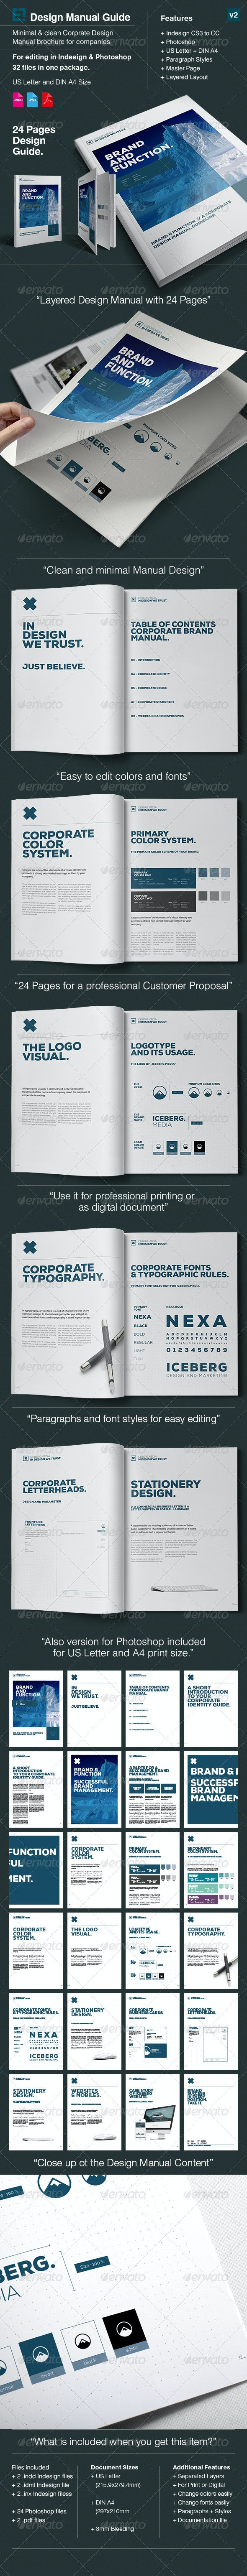 Elite Corporate Design Manual Guide - 24 Pages - Corporate Brochures